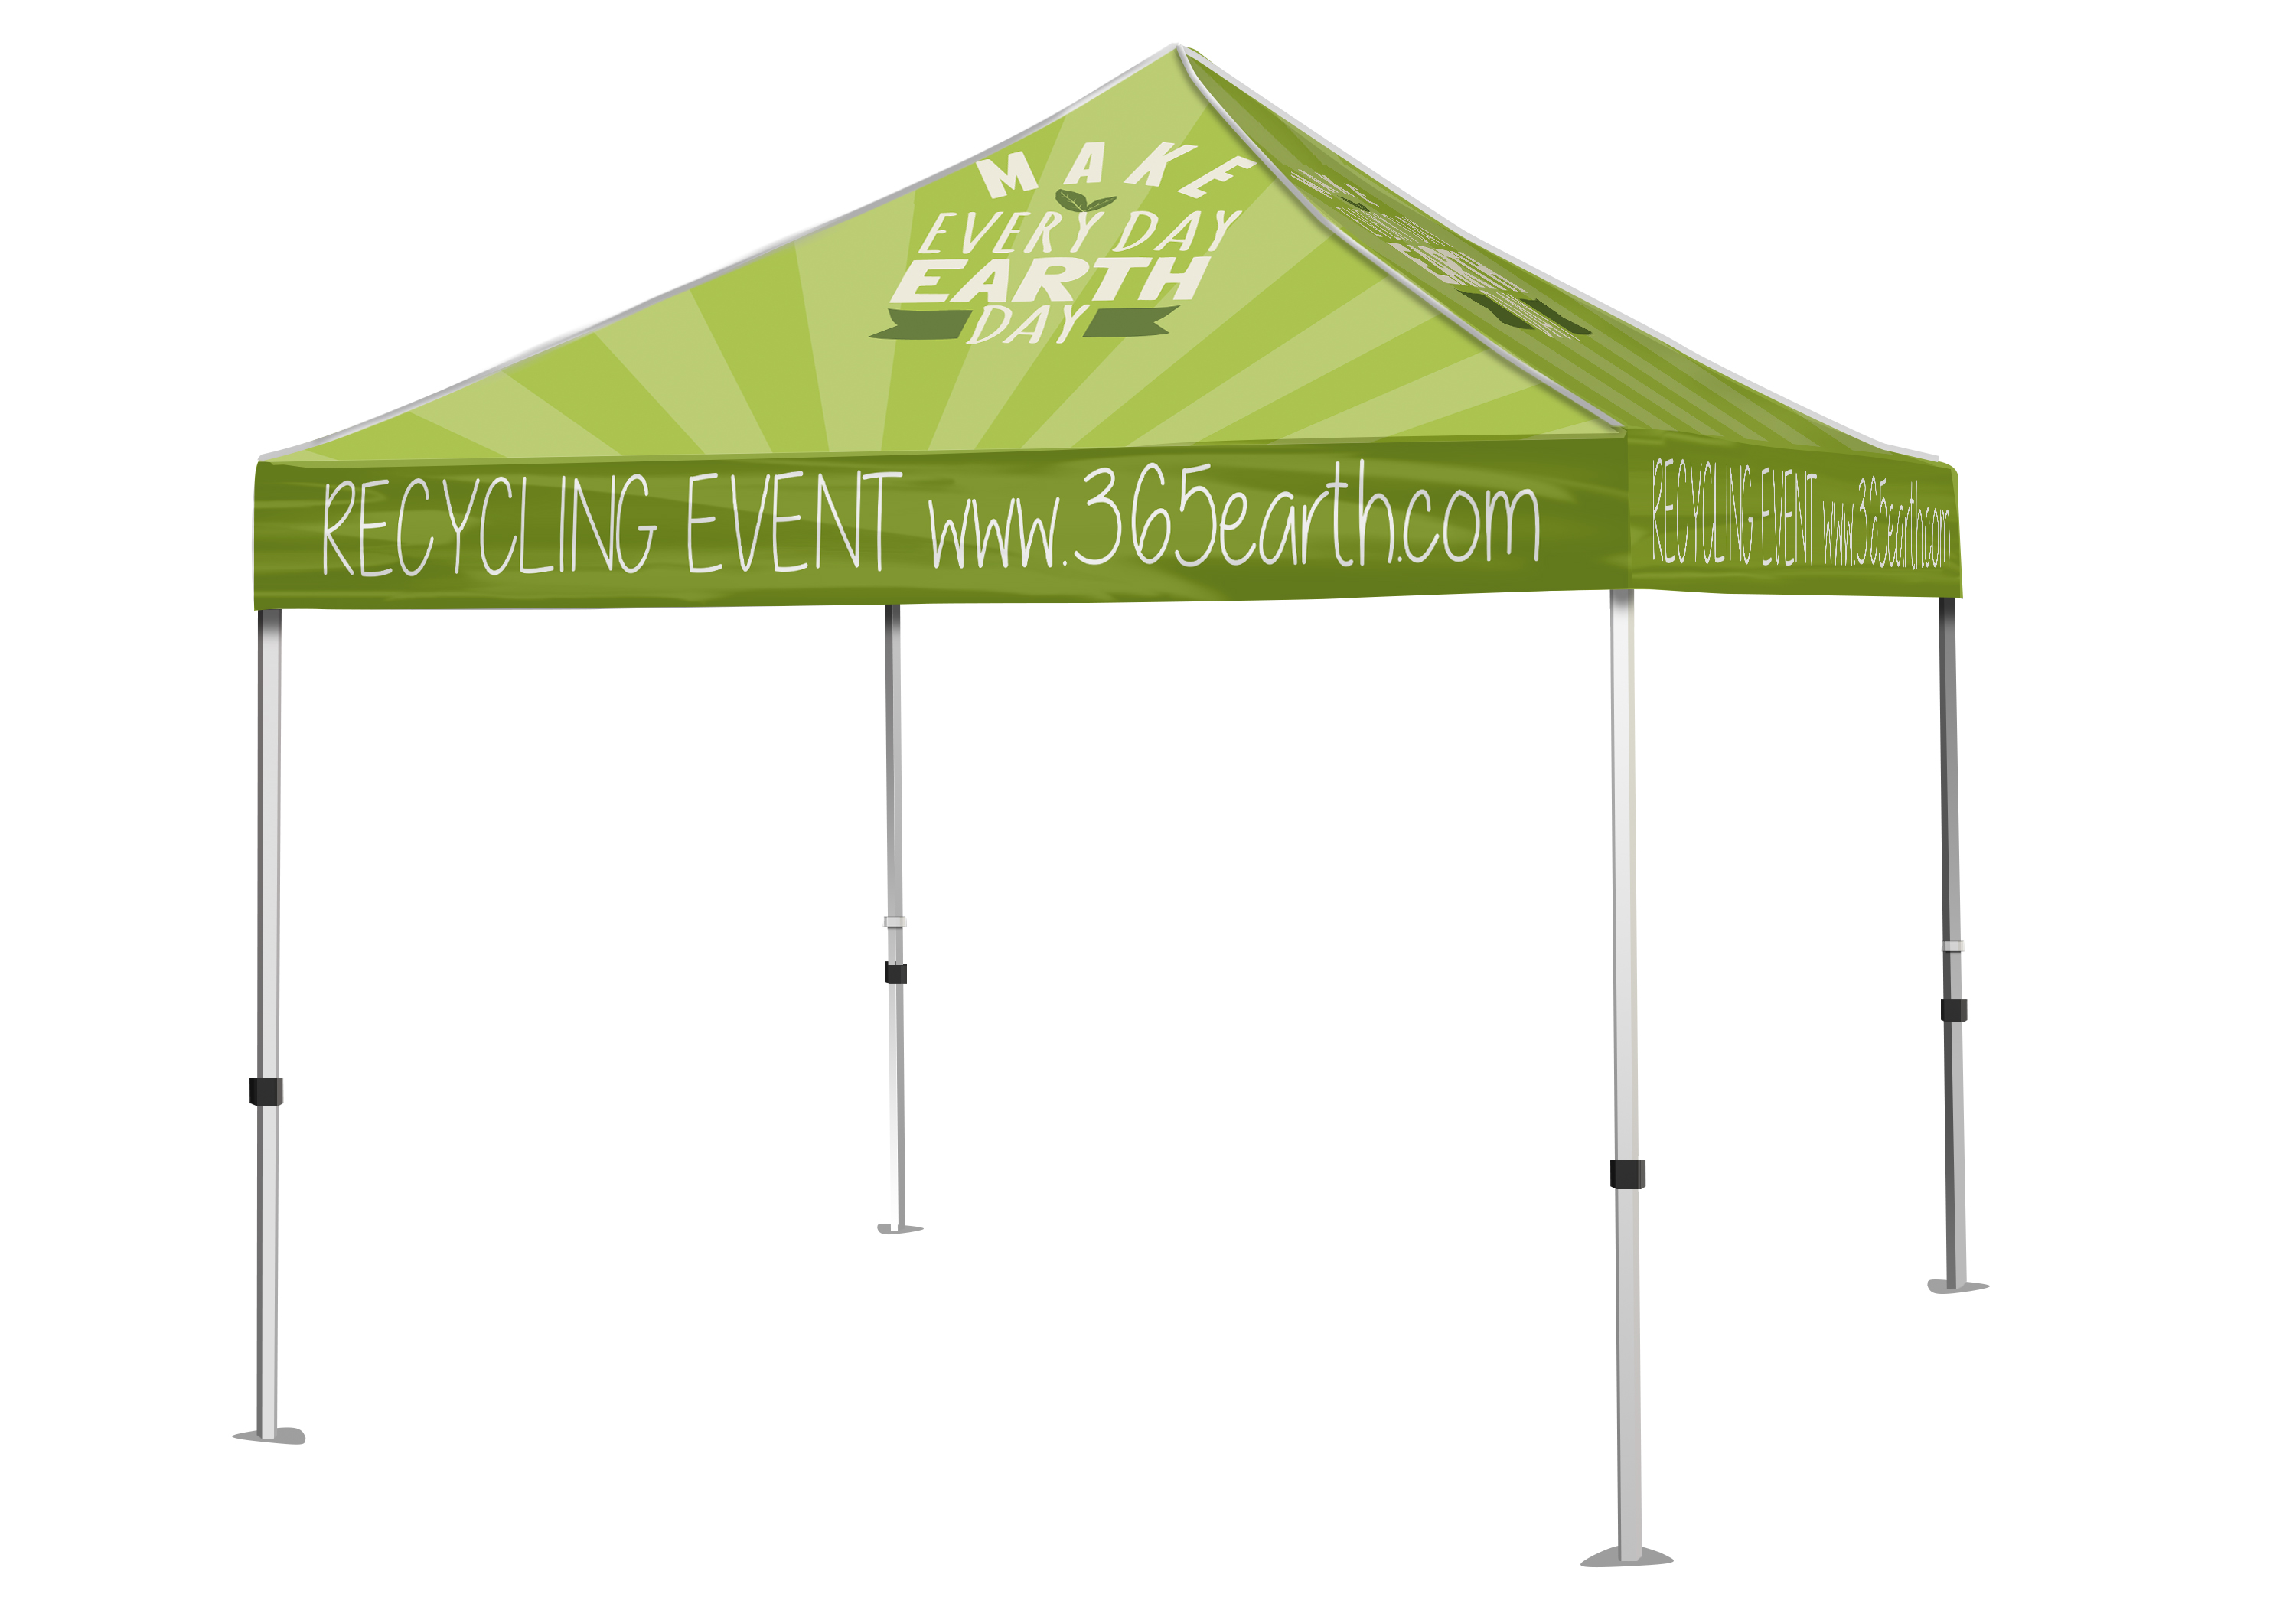 Event Tent Canopy Graphic